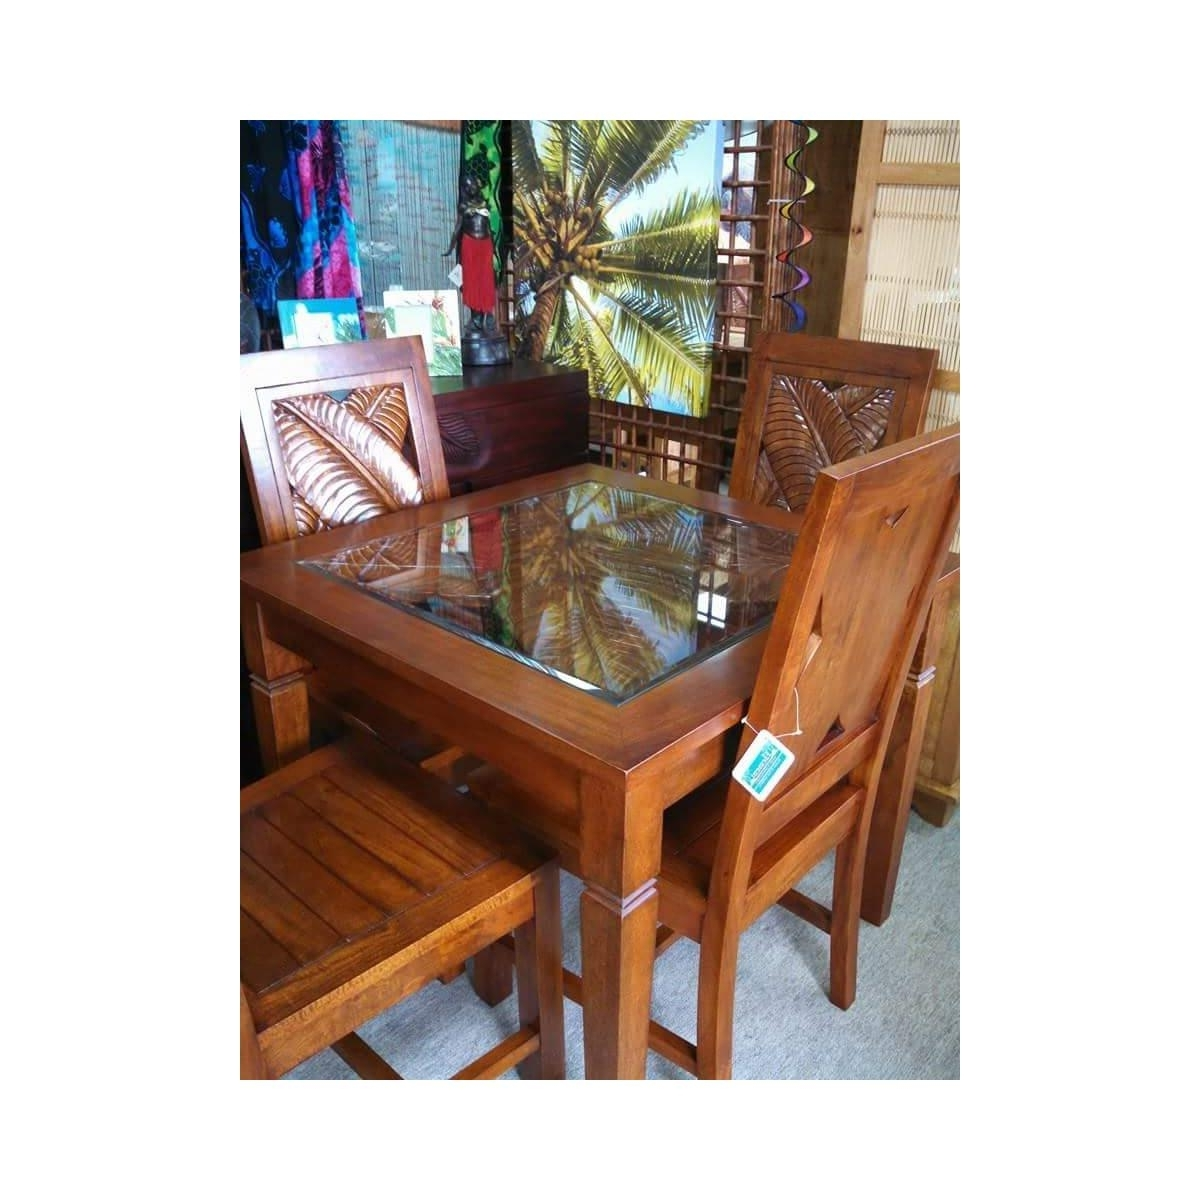 Balinese Dining Tables In Latest Bali Carved Dining Table At Elementfinefurniture Hand Made Solid (View 4 of 25)